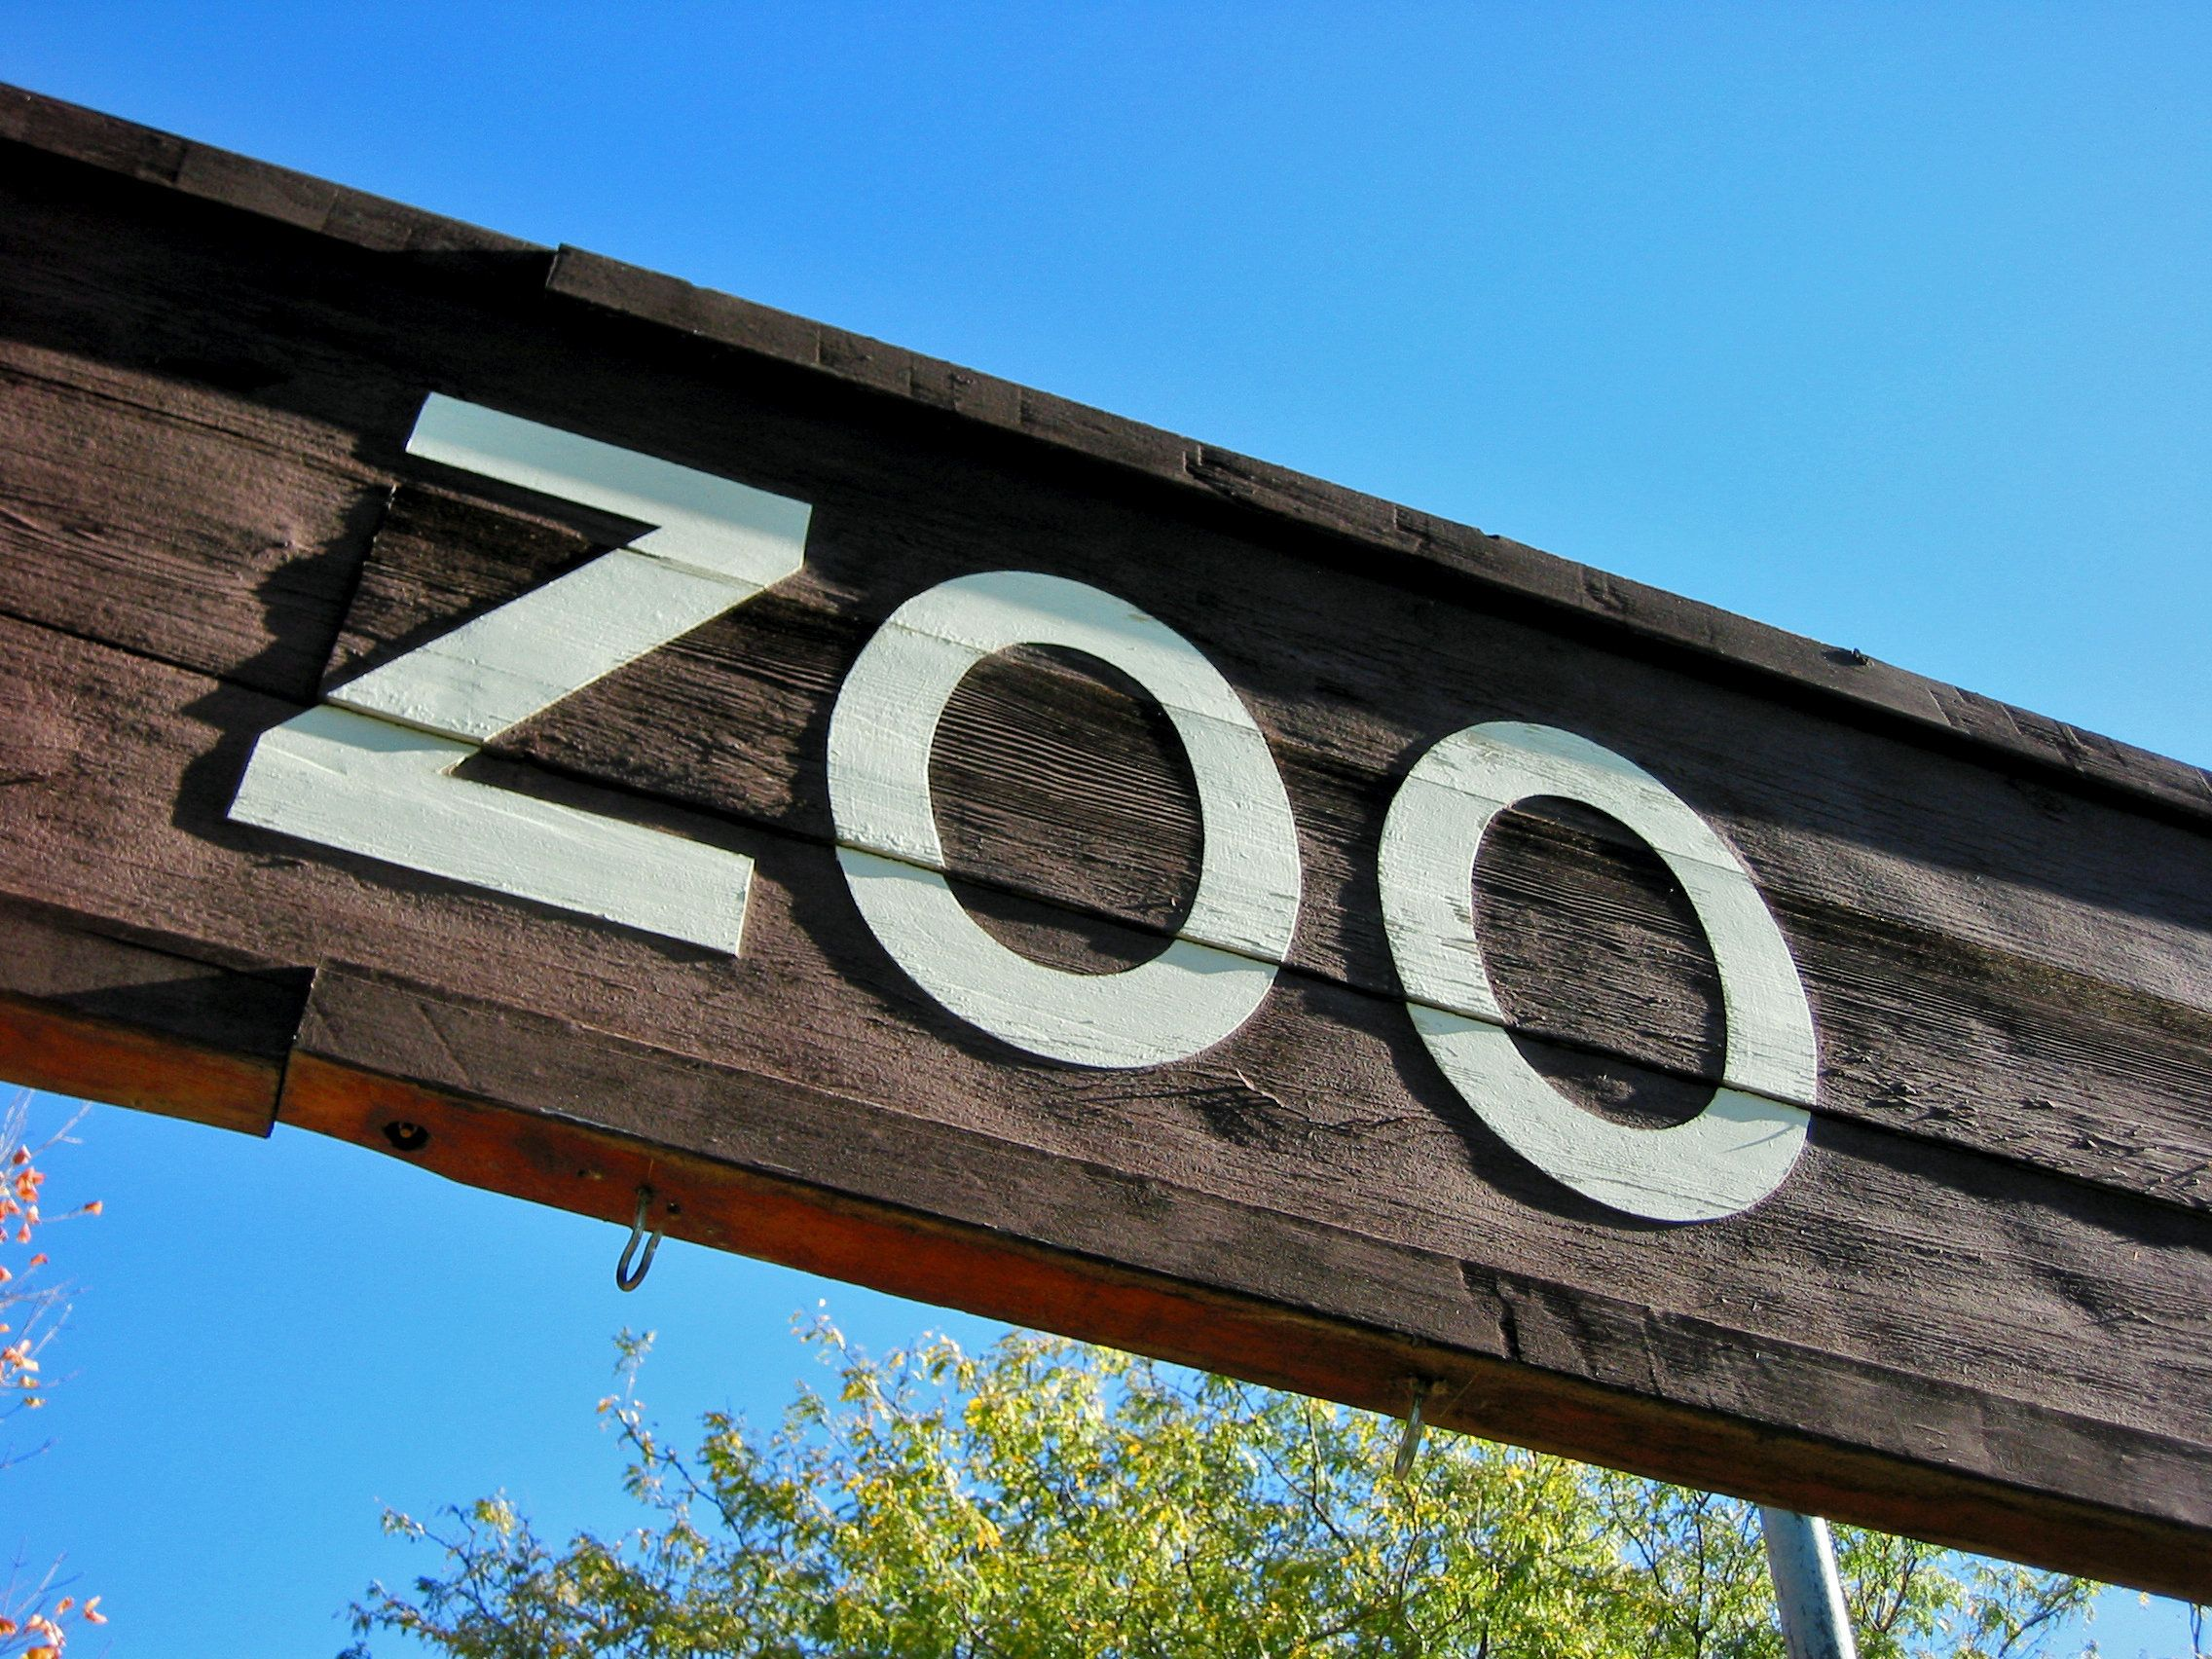 A sign over the entrance to the zoo.